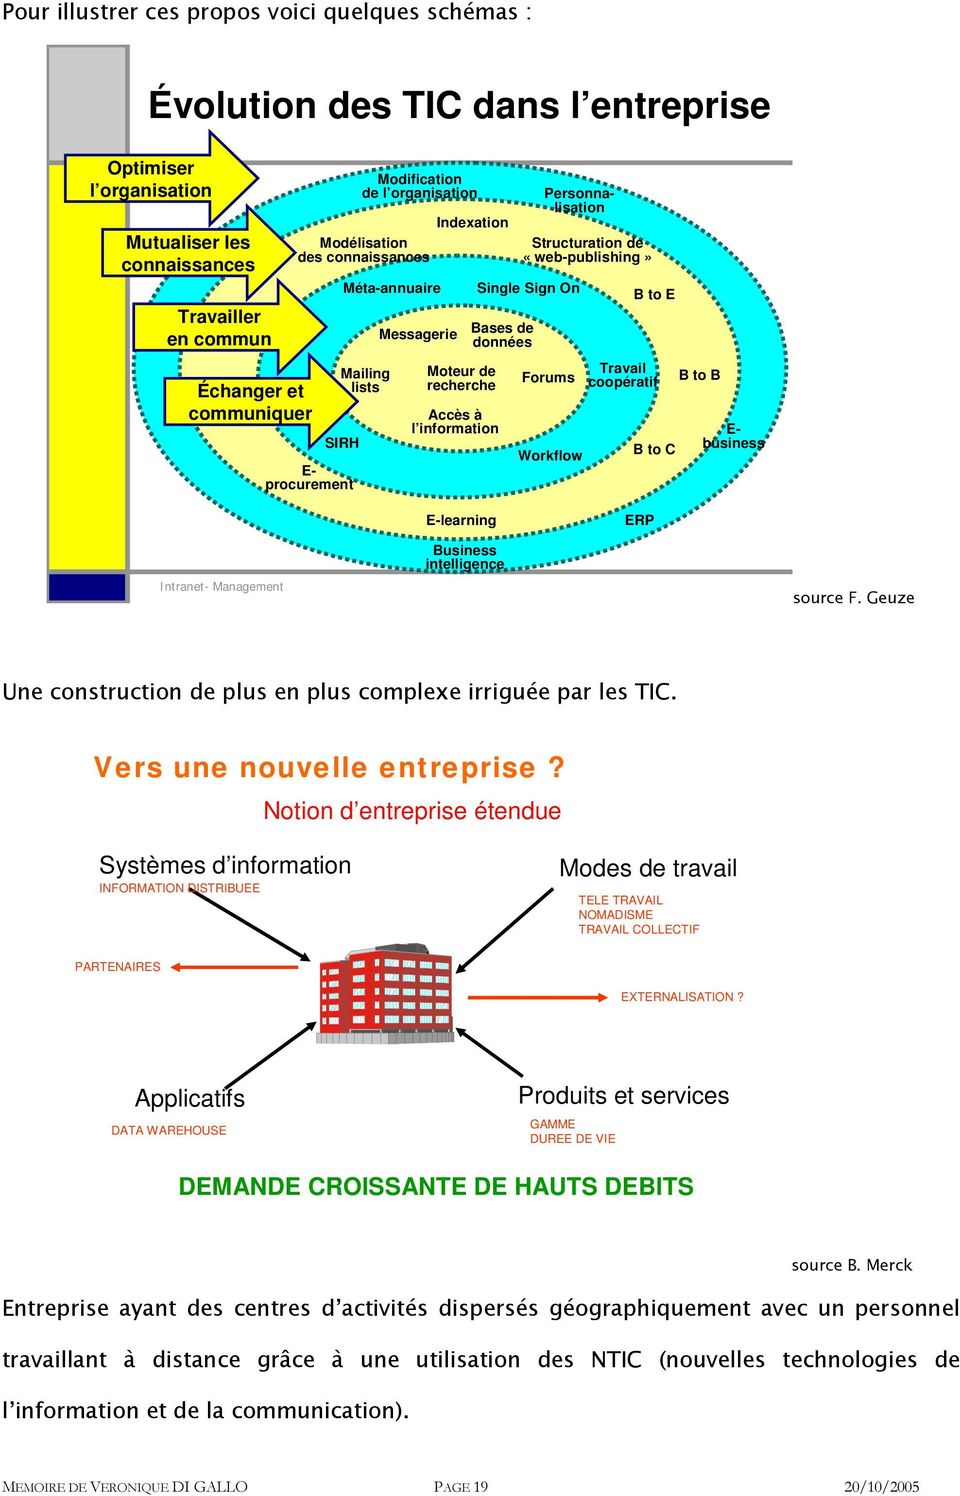 information Personnalisation Structuration de «web-publishing» Single Sign On Forums Workflow B to E Travail coopératif B to C B to B E- business E-learning ERP Intranet- Management Business